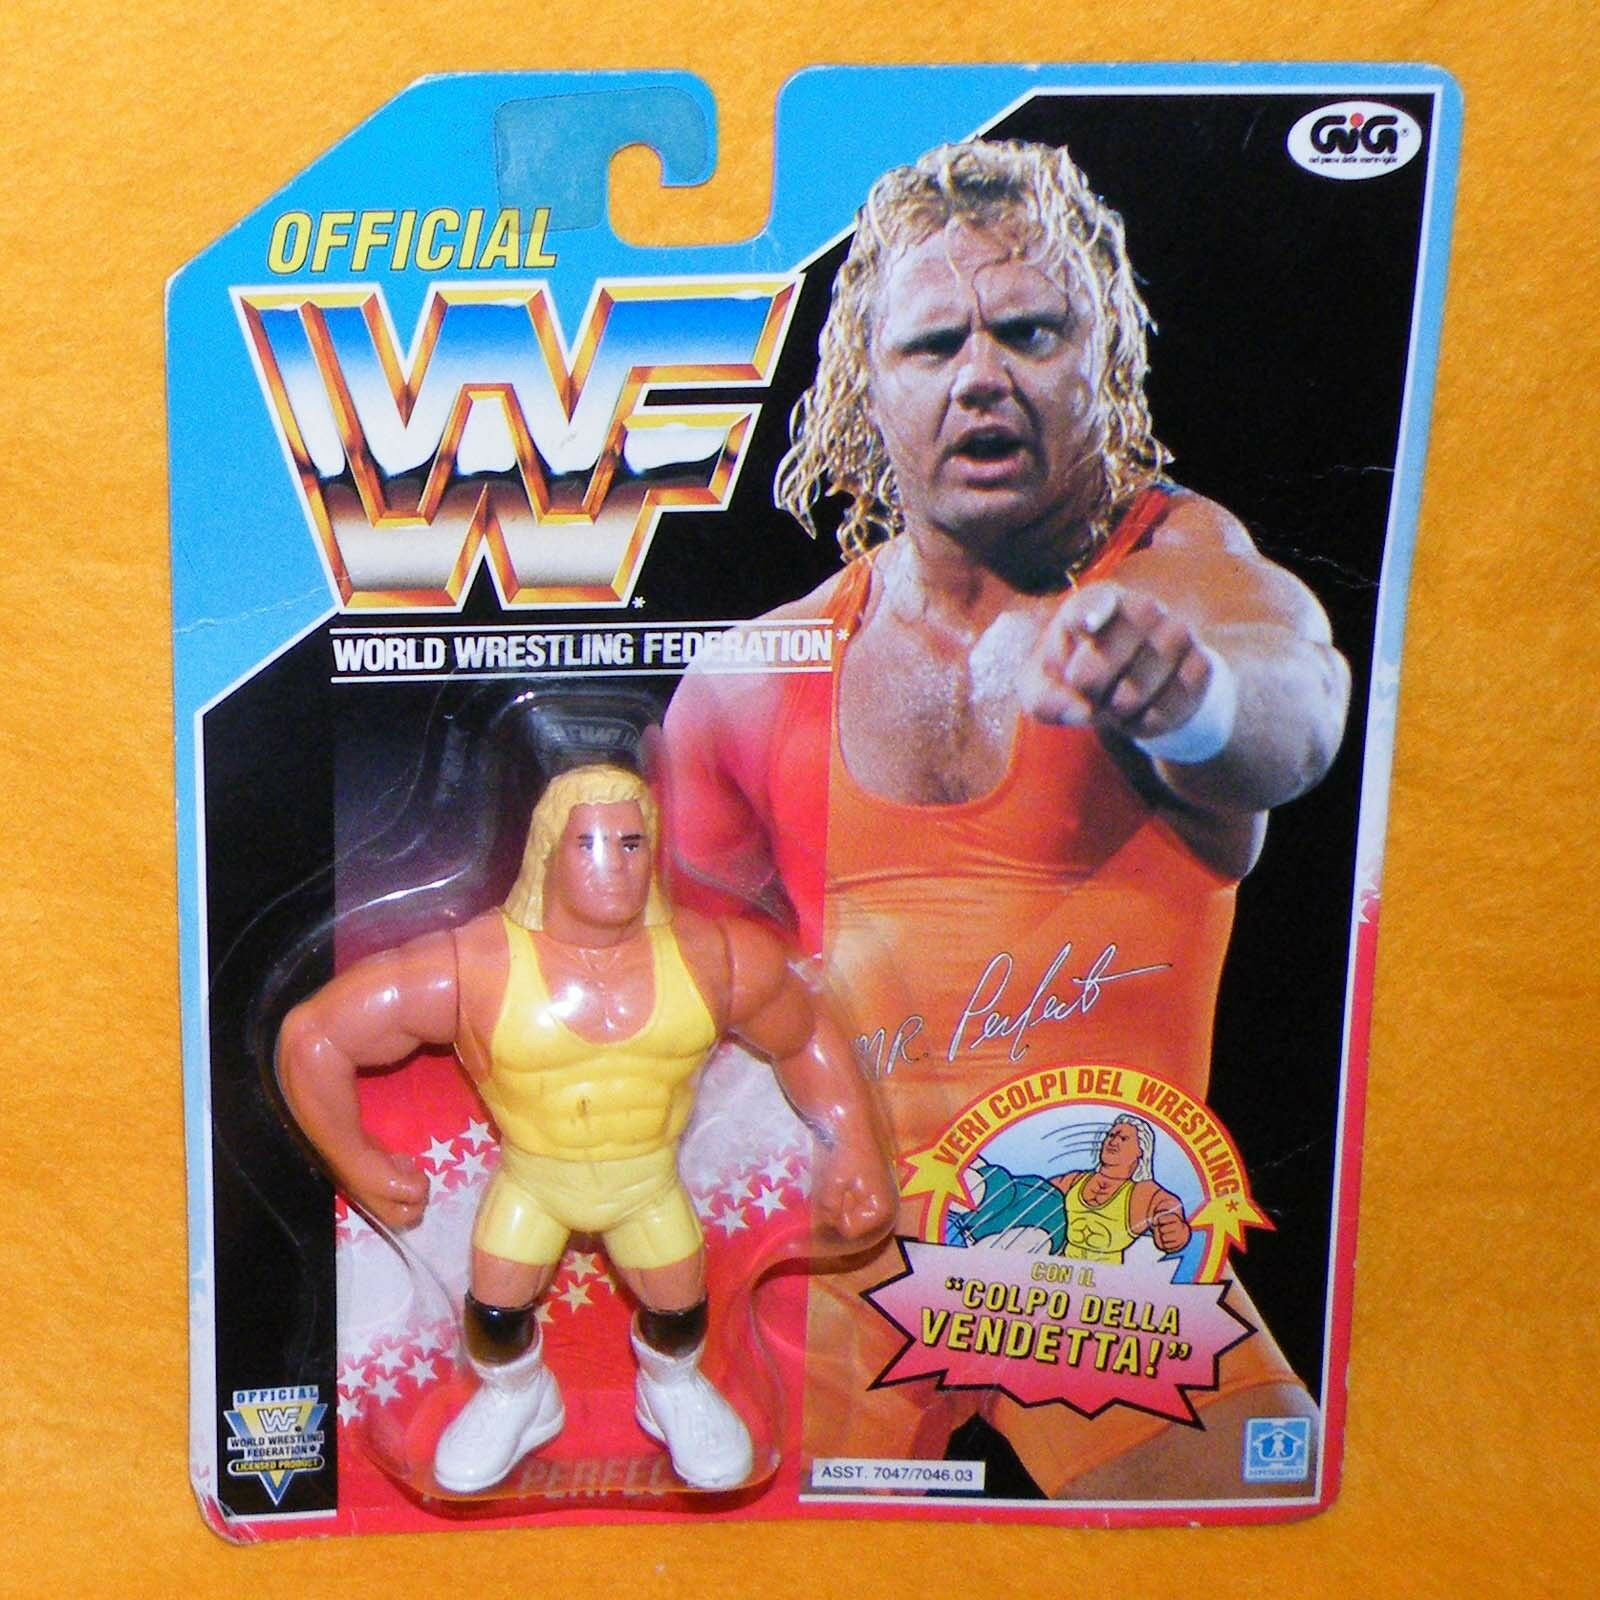 VINTAGE 1993 HASBRO GIG WWF WRESTLING SERIES 8 MR. PERFECT FIGURE MOC CARDED